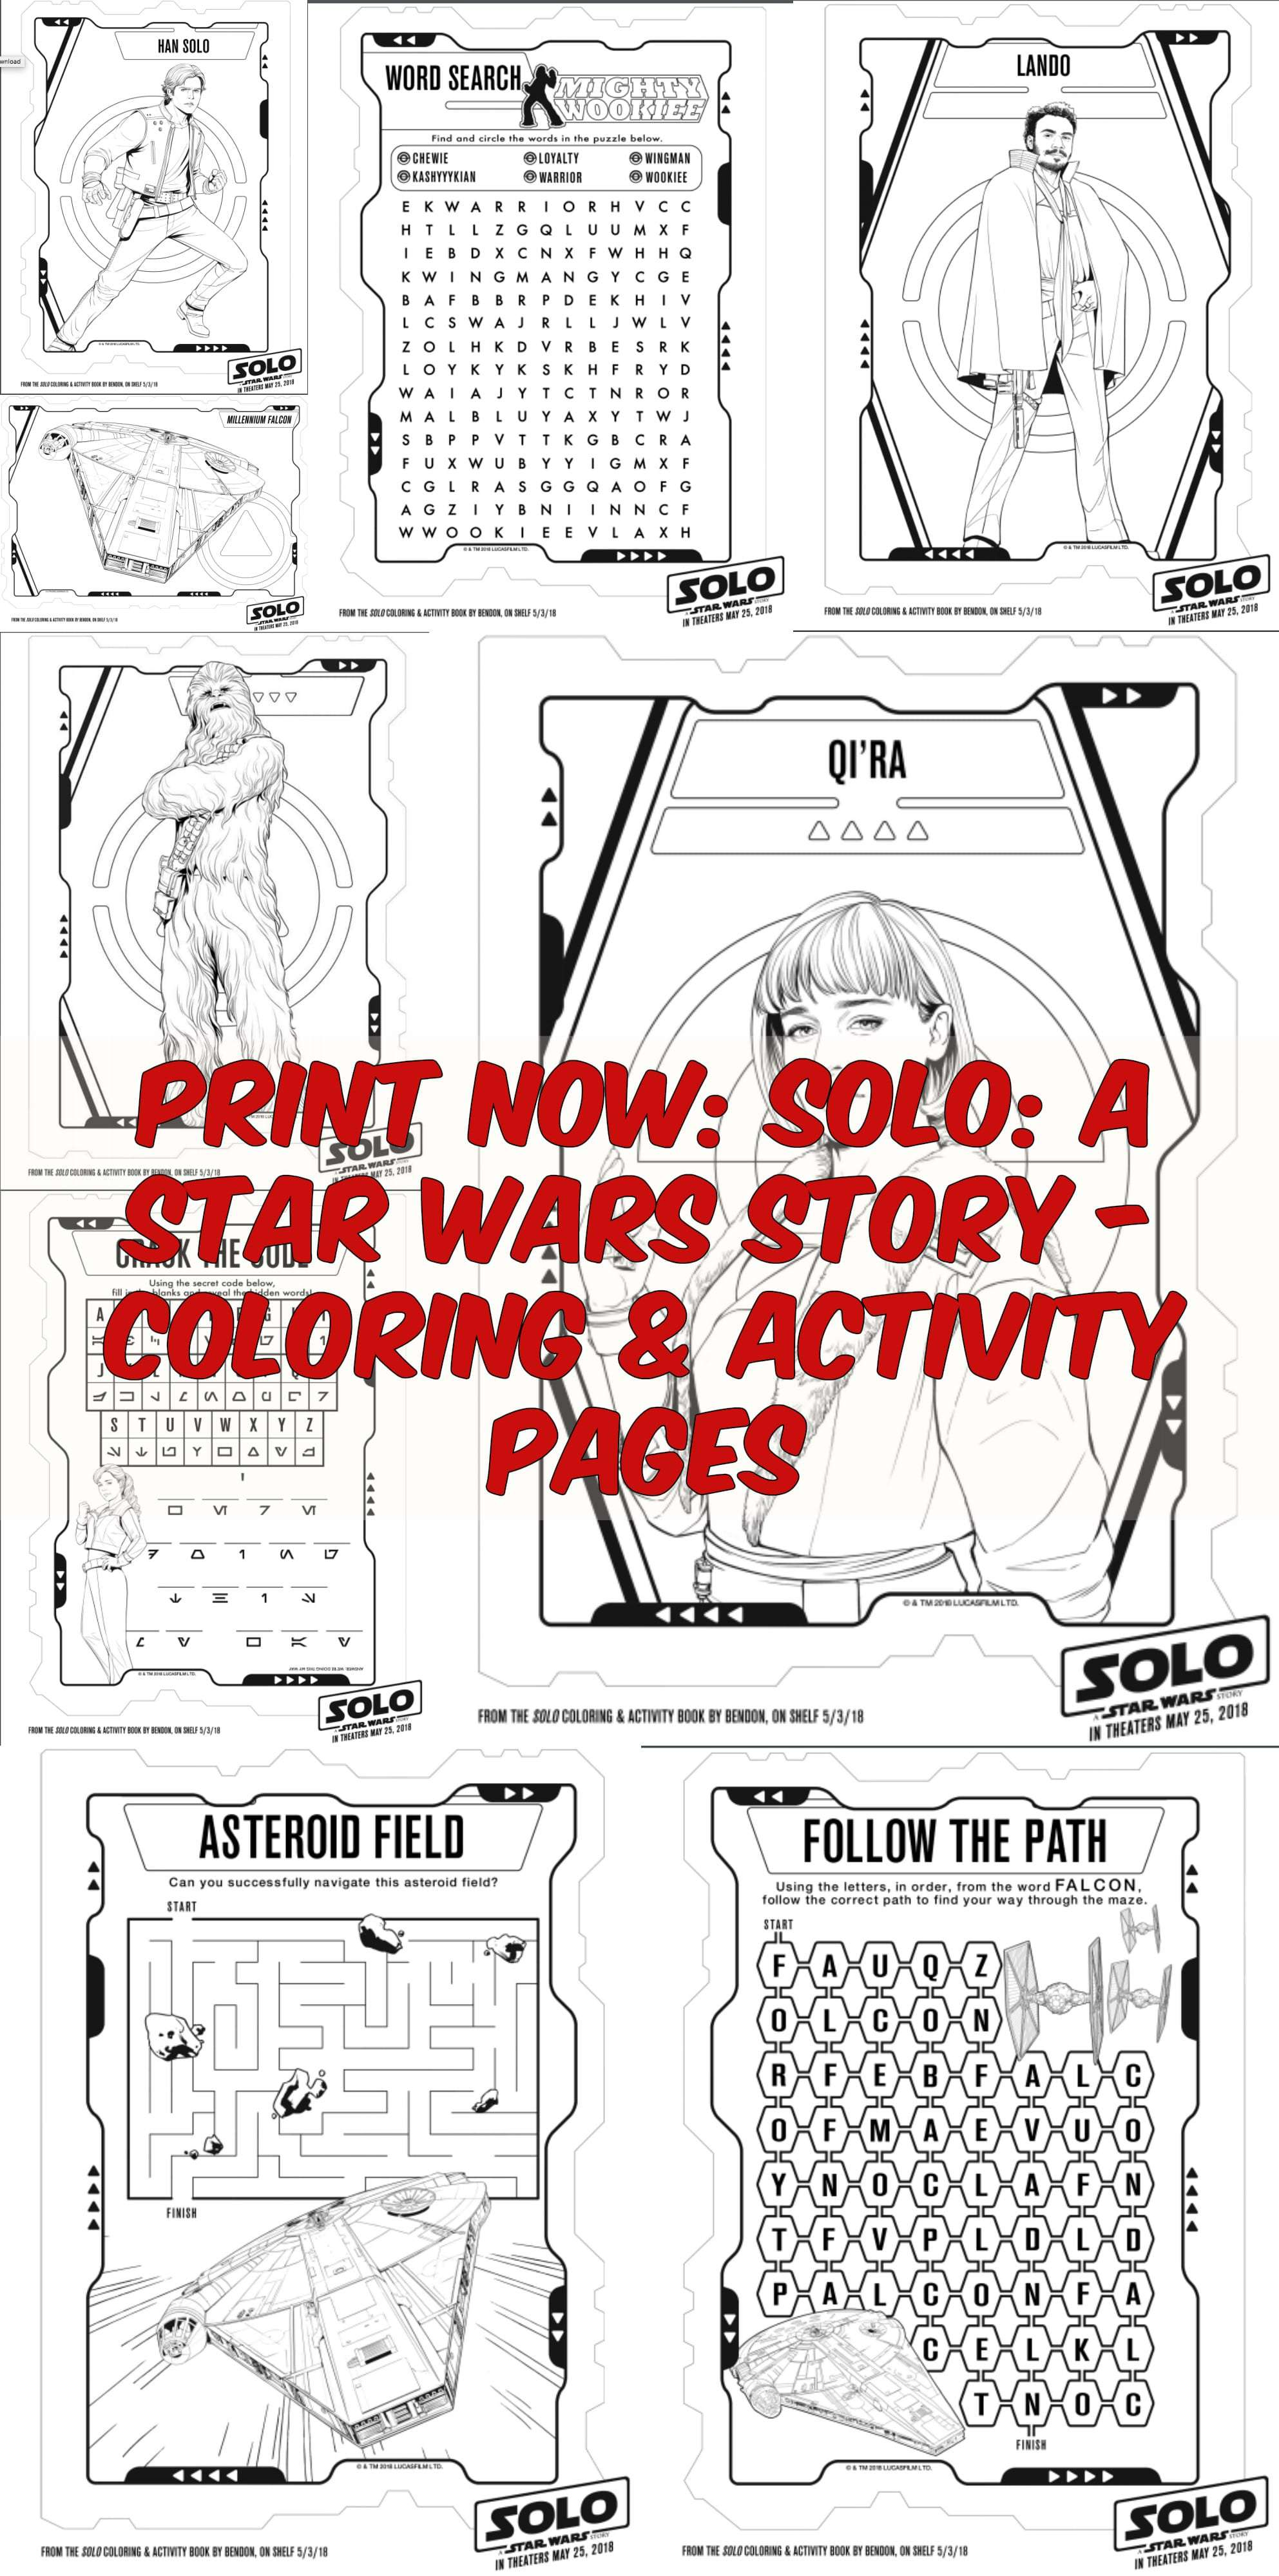 Star Wars Printable Worksheet Addition